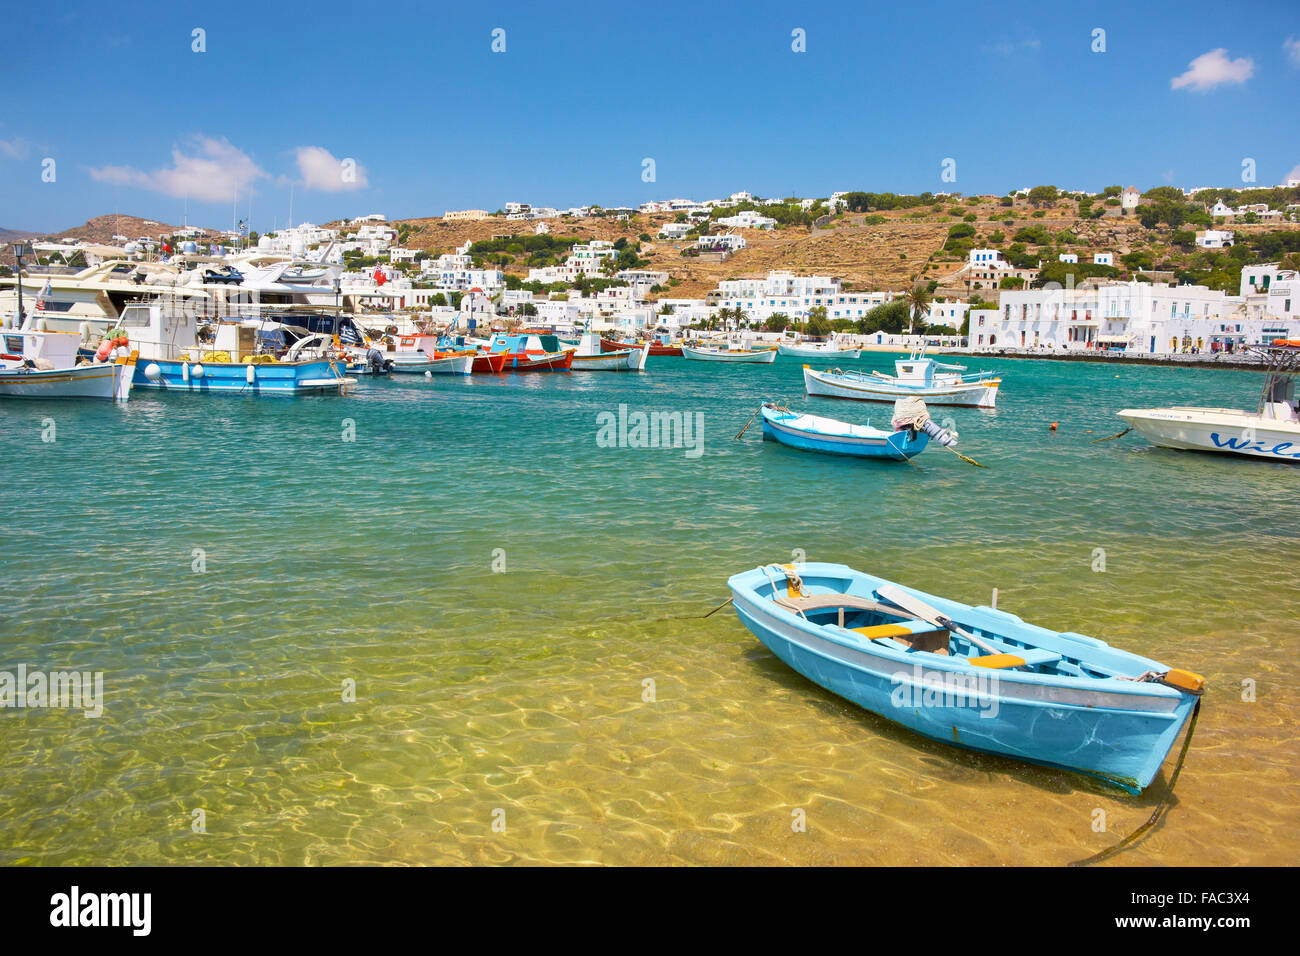 Mykonos - Cyclades Islands, Greece - Stock Image